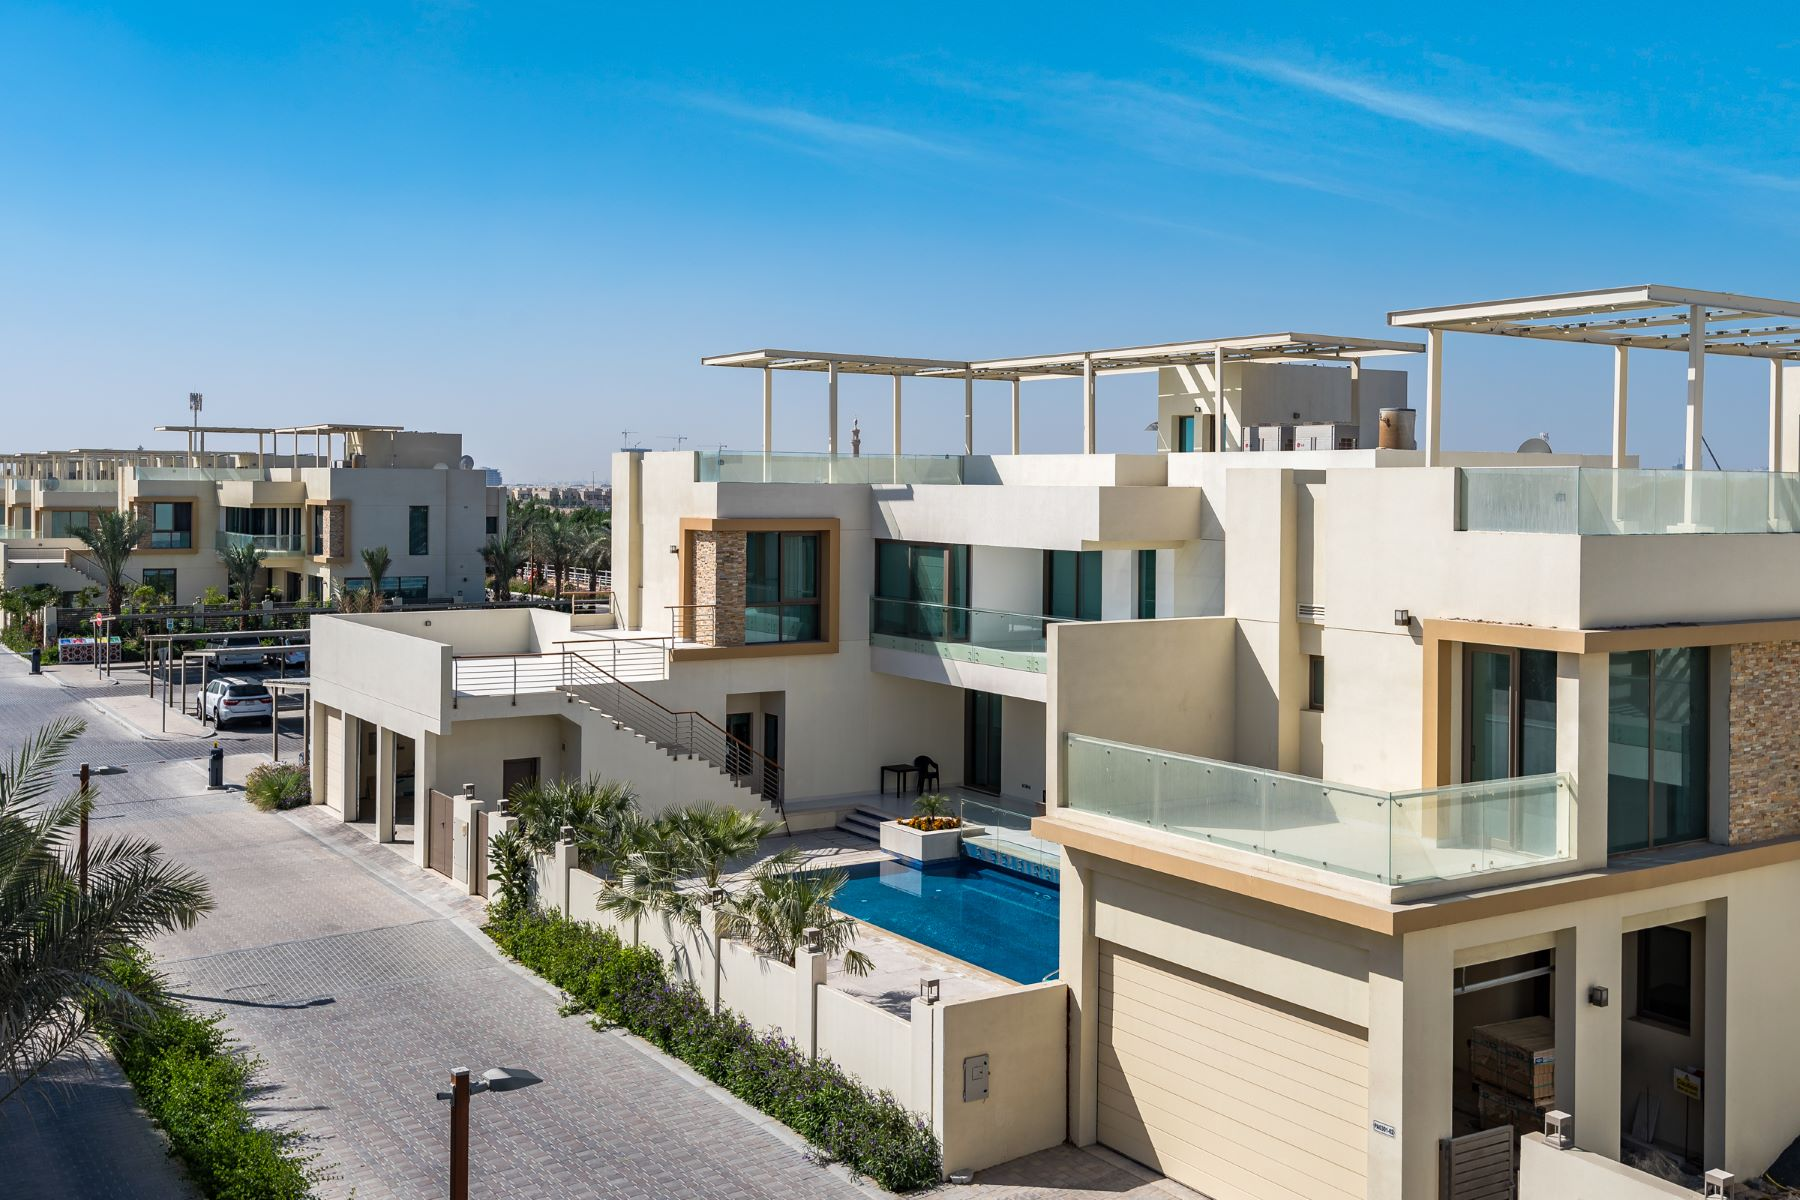 Apartamento por un Alquiler en The Sustainable City Dubailand, Dubai, Emiratos Arabes Unidos